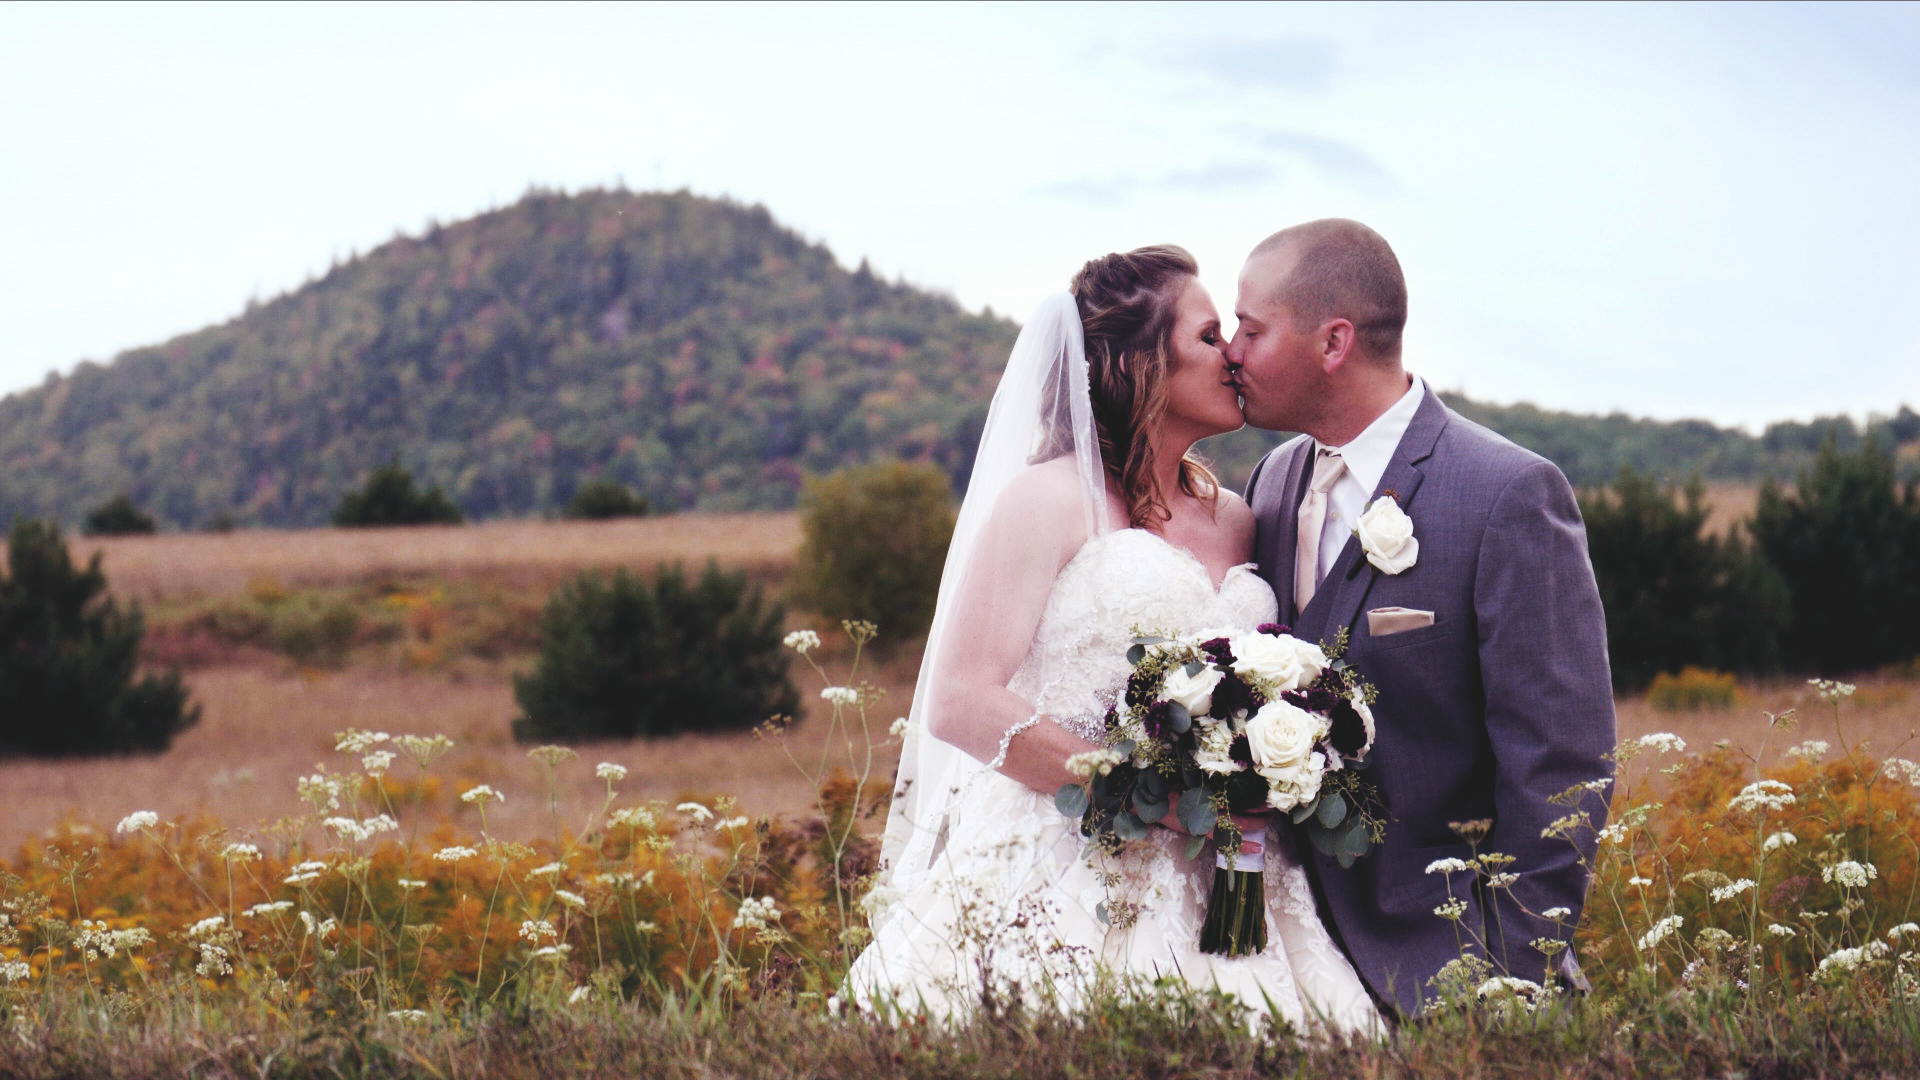 Steven & Bethany | Wedding Film